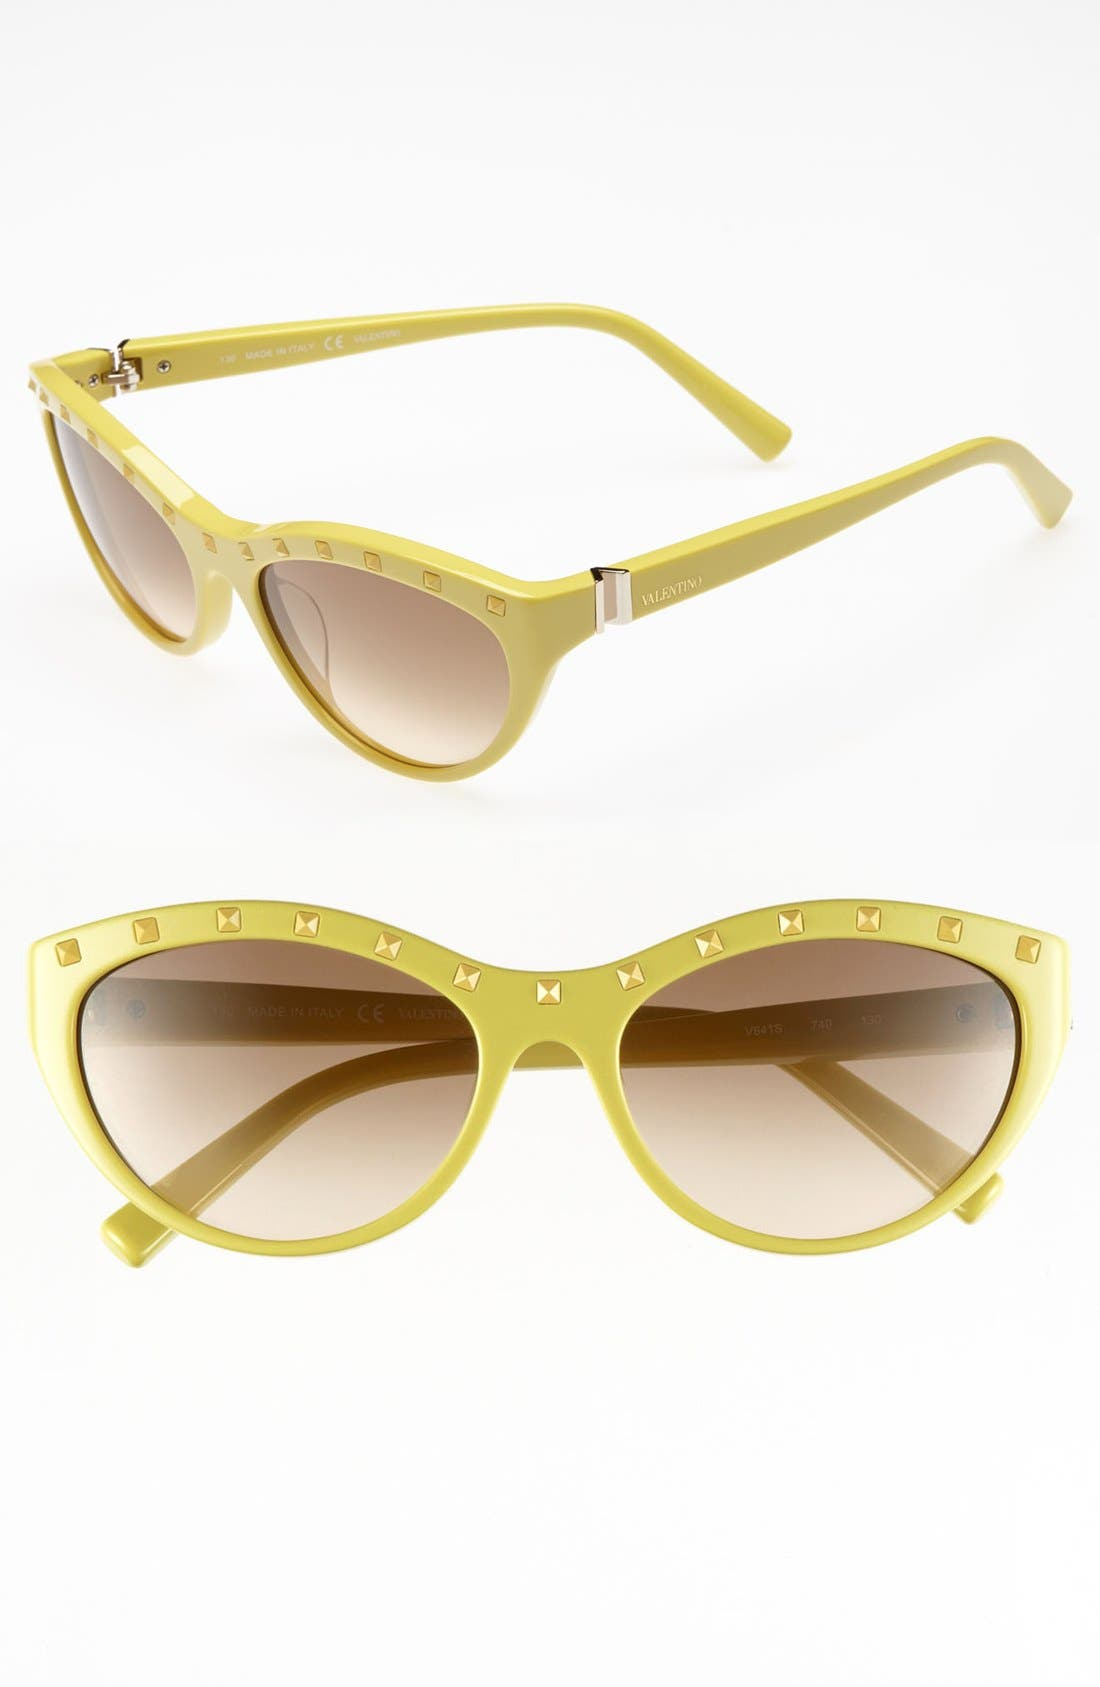 Main Image - Valentino 54mm 'Rockstud' Cat's Eye Sunglasses (Online Only)